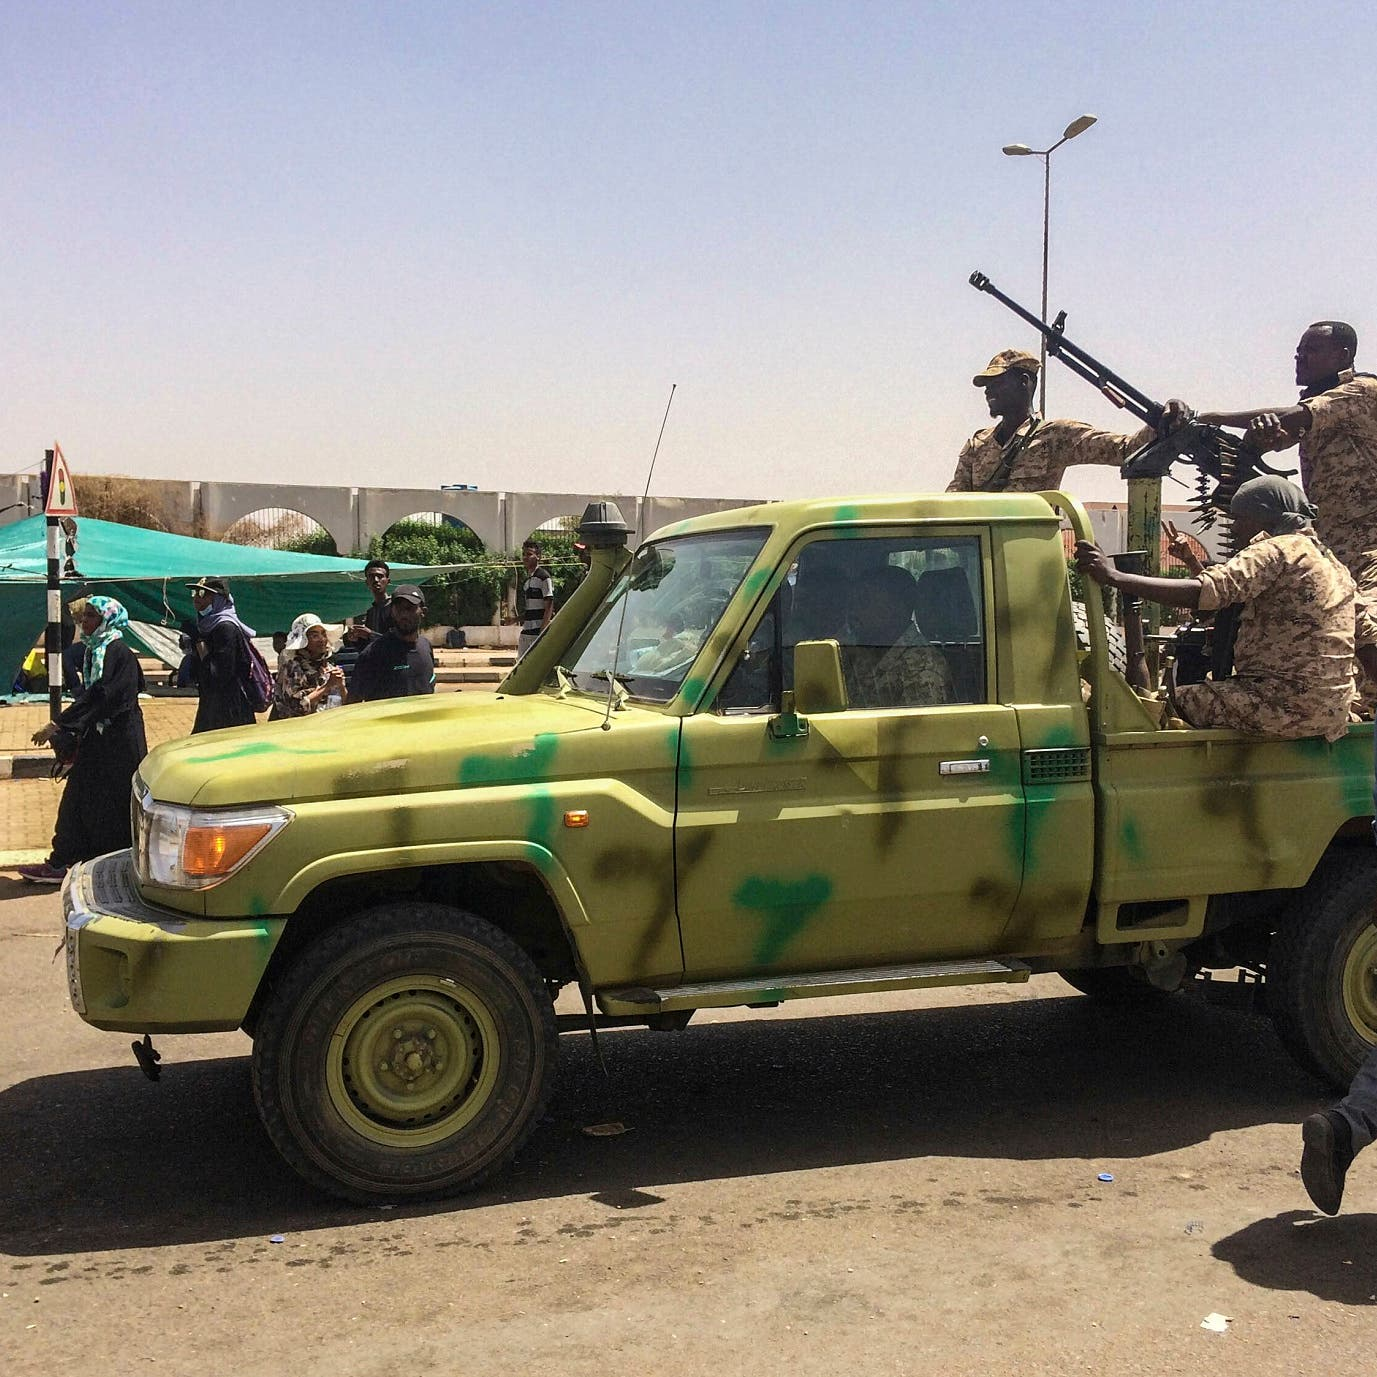 Sudan says it repelled attempted incursion by Ethiopian forces